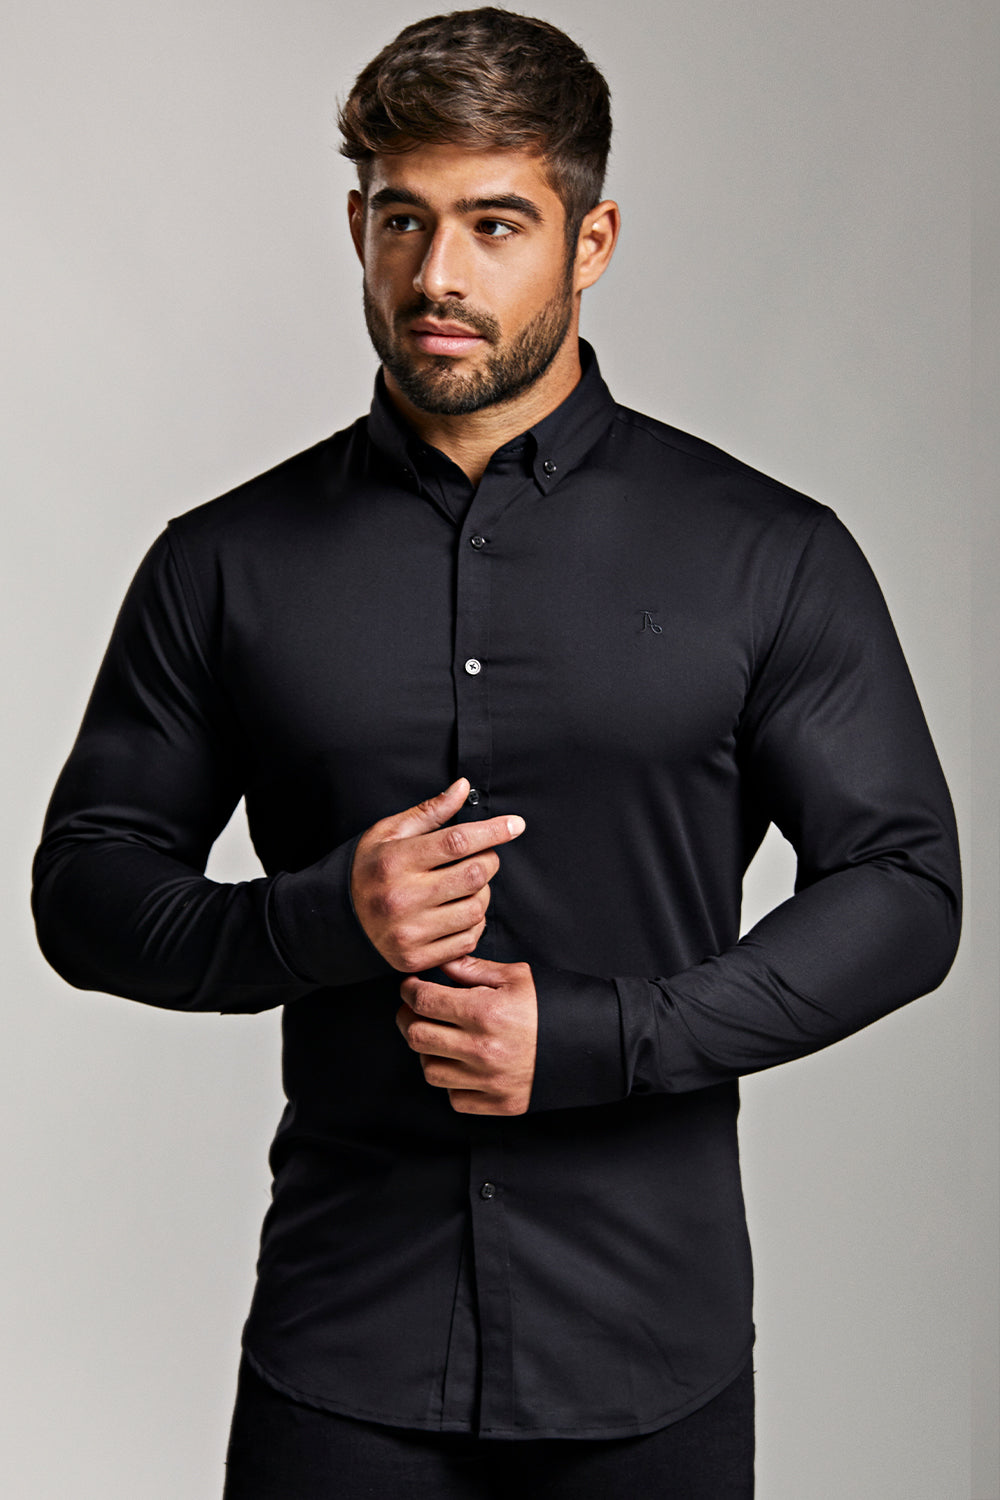 Bamboo Signature Shirt (Limited Edition) in Black